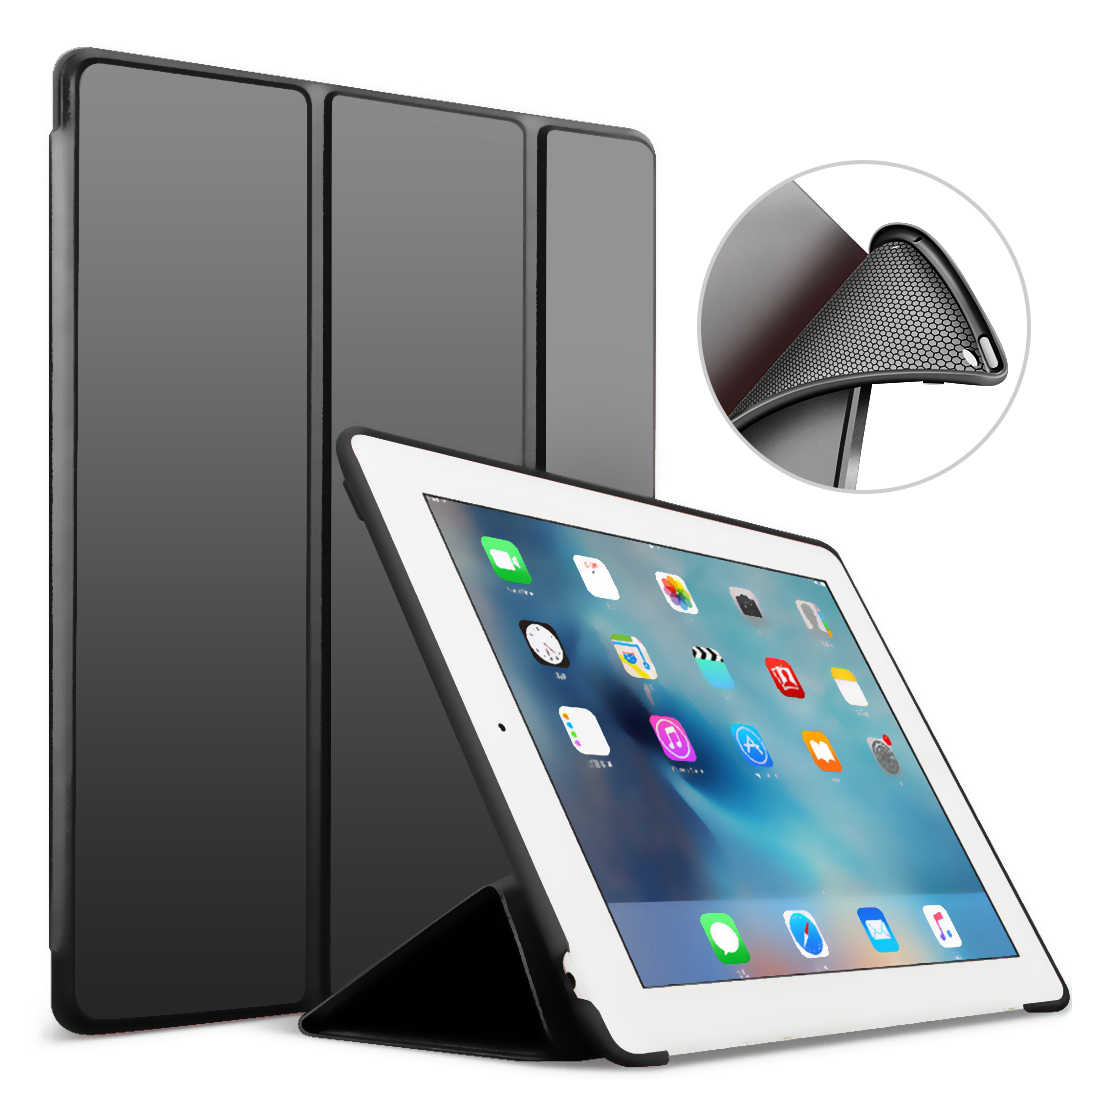 Smart Case For iPad Mini 3 2 1 Auto Sleep Wake Cover for iPad Mini1 Mini2 Mini3 Protective Shell for iPad Mini 2012 2013 2014